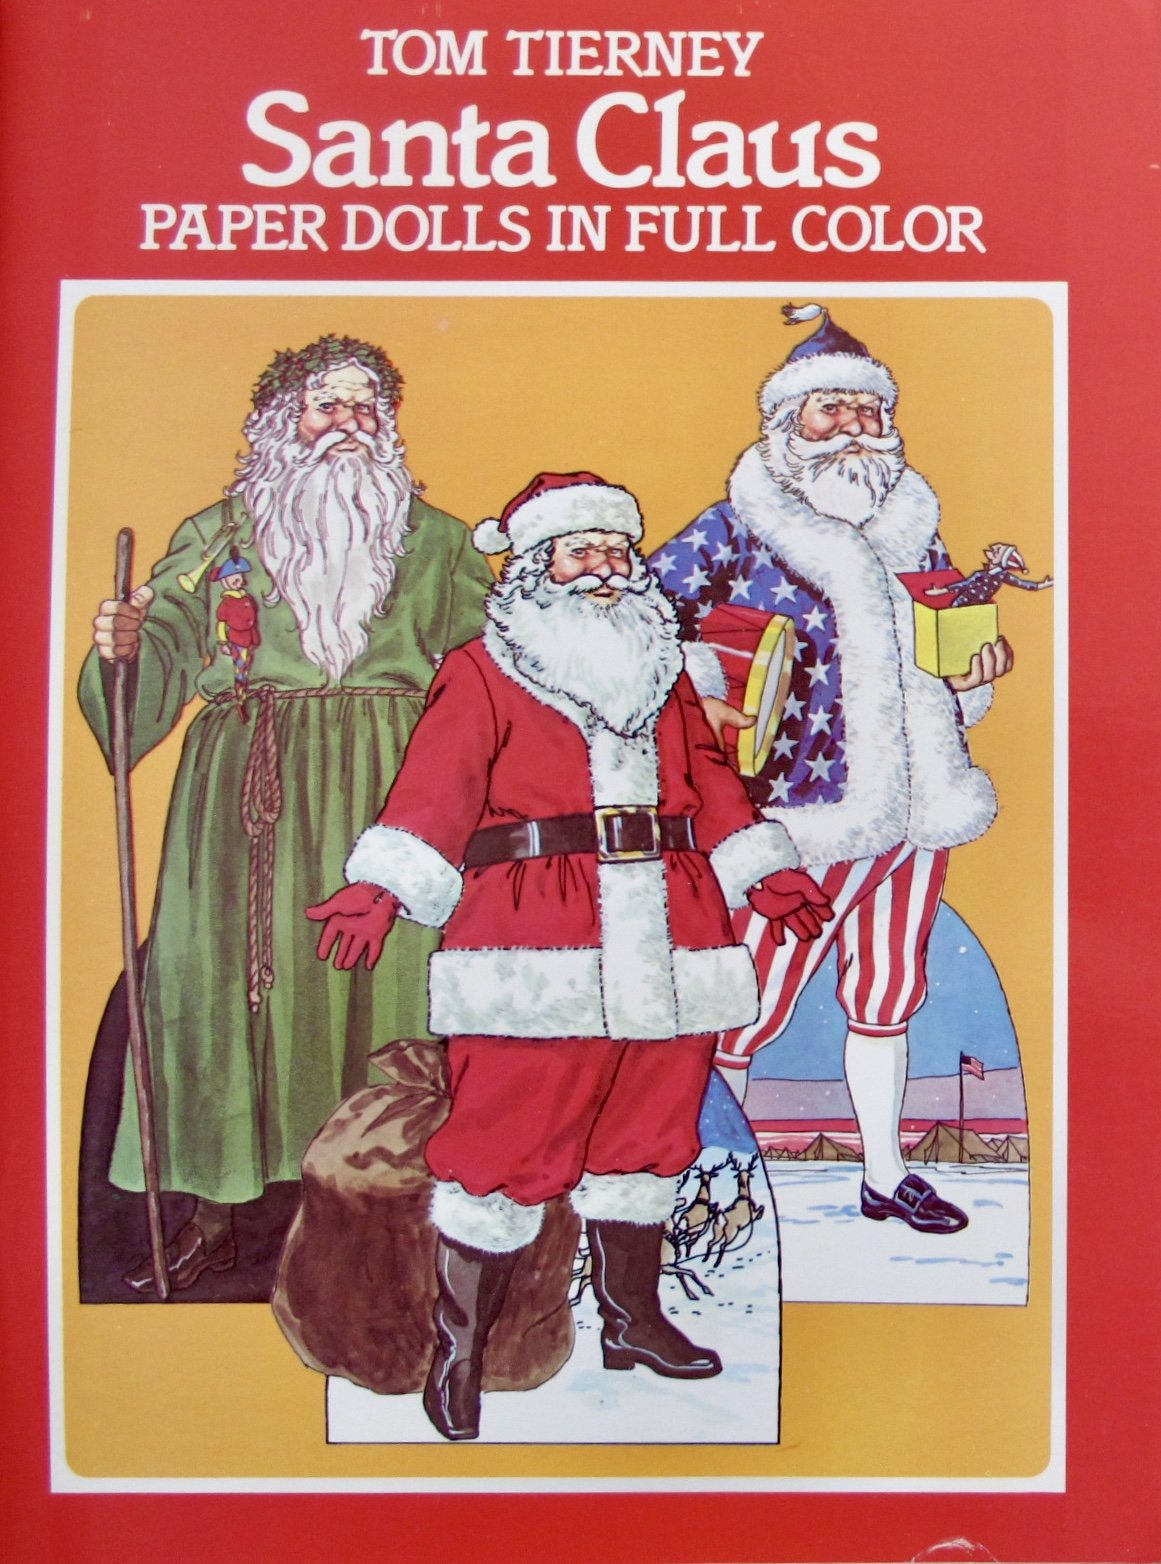 Tom Tierney SANTA CLAUS PAPER DOLLS BOOK (UNCUT) in Full COLOR w 4 Card Stock DOLLS, 8 Figures, XMAS TREE & Decorations, COSTUMES (1983 Dover)